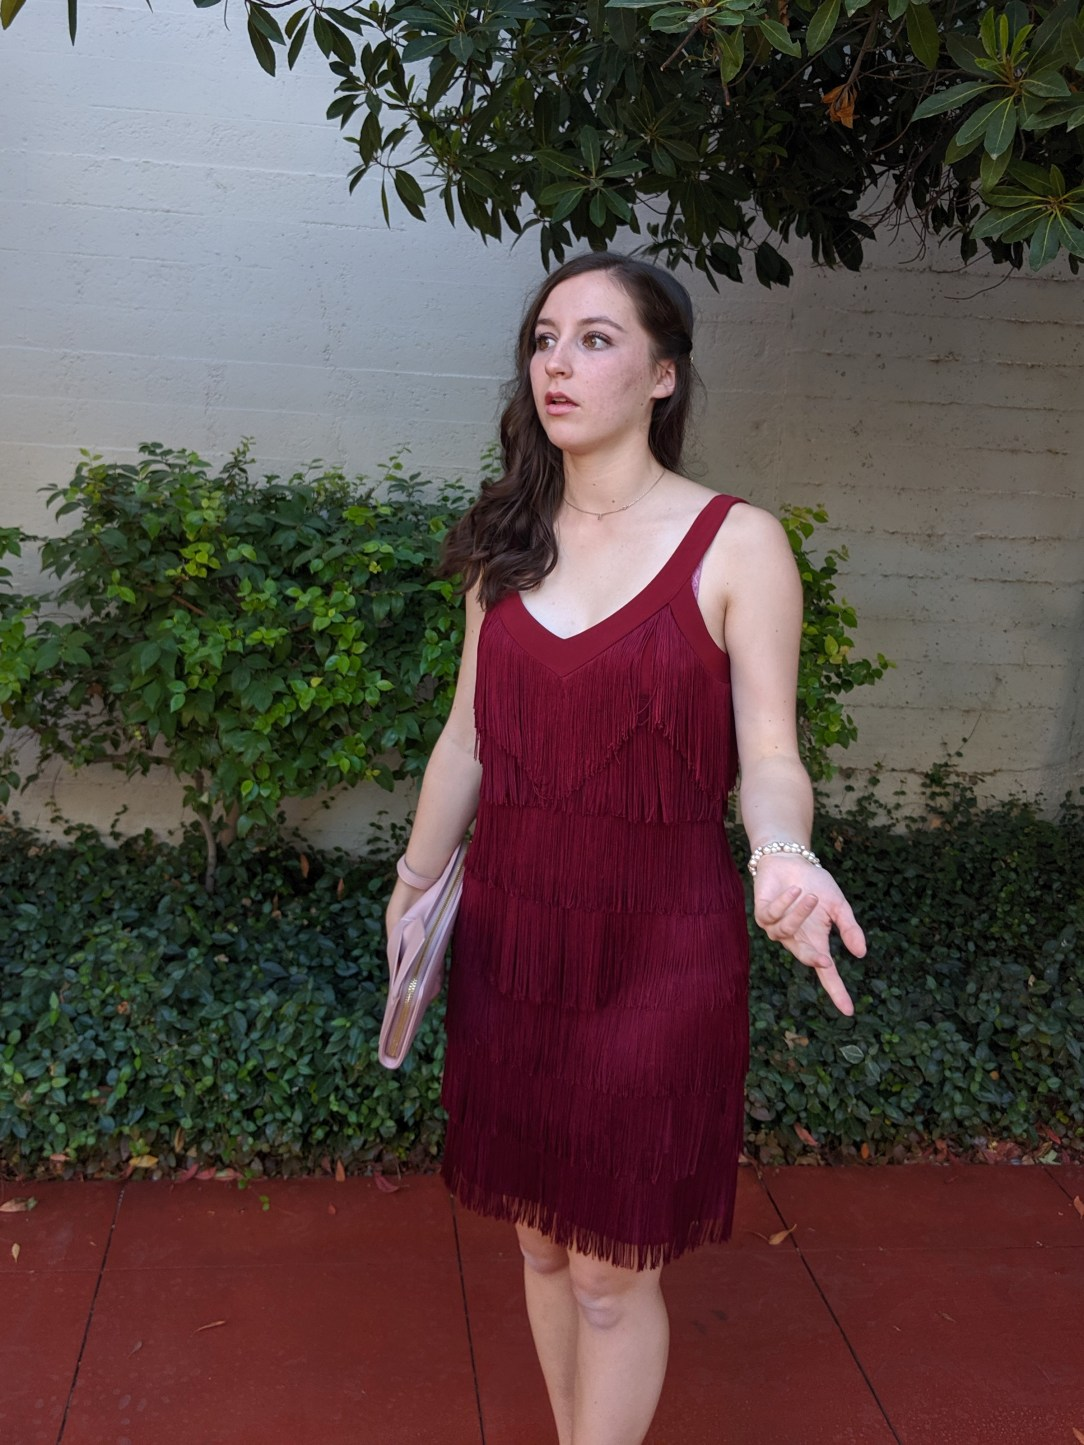 college, college student, blooper photos, fringe dress